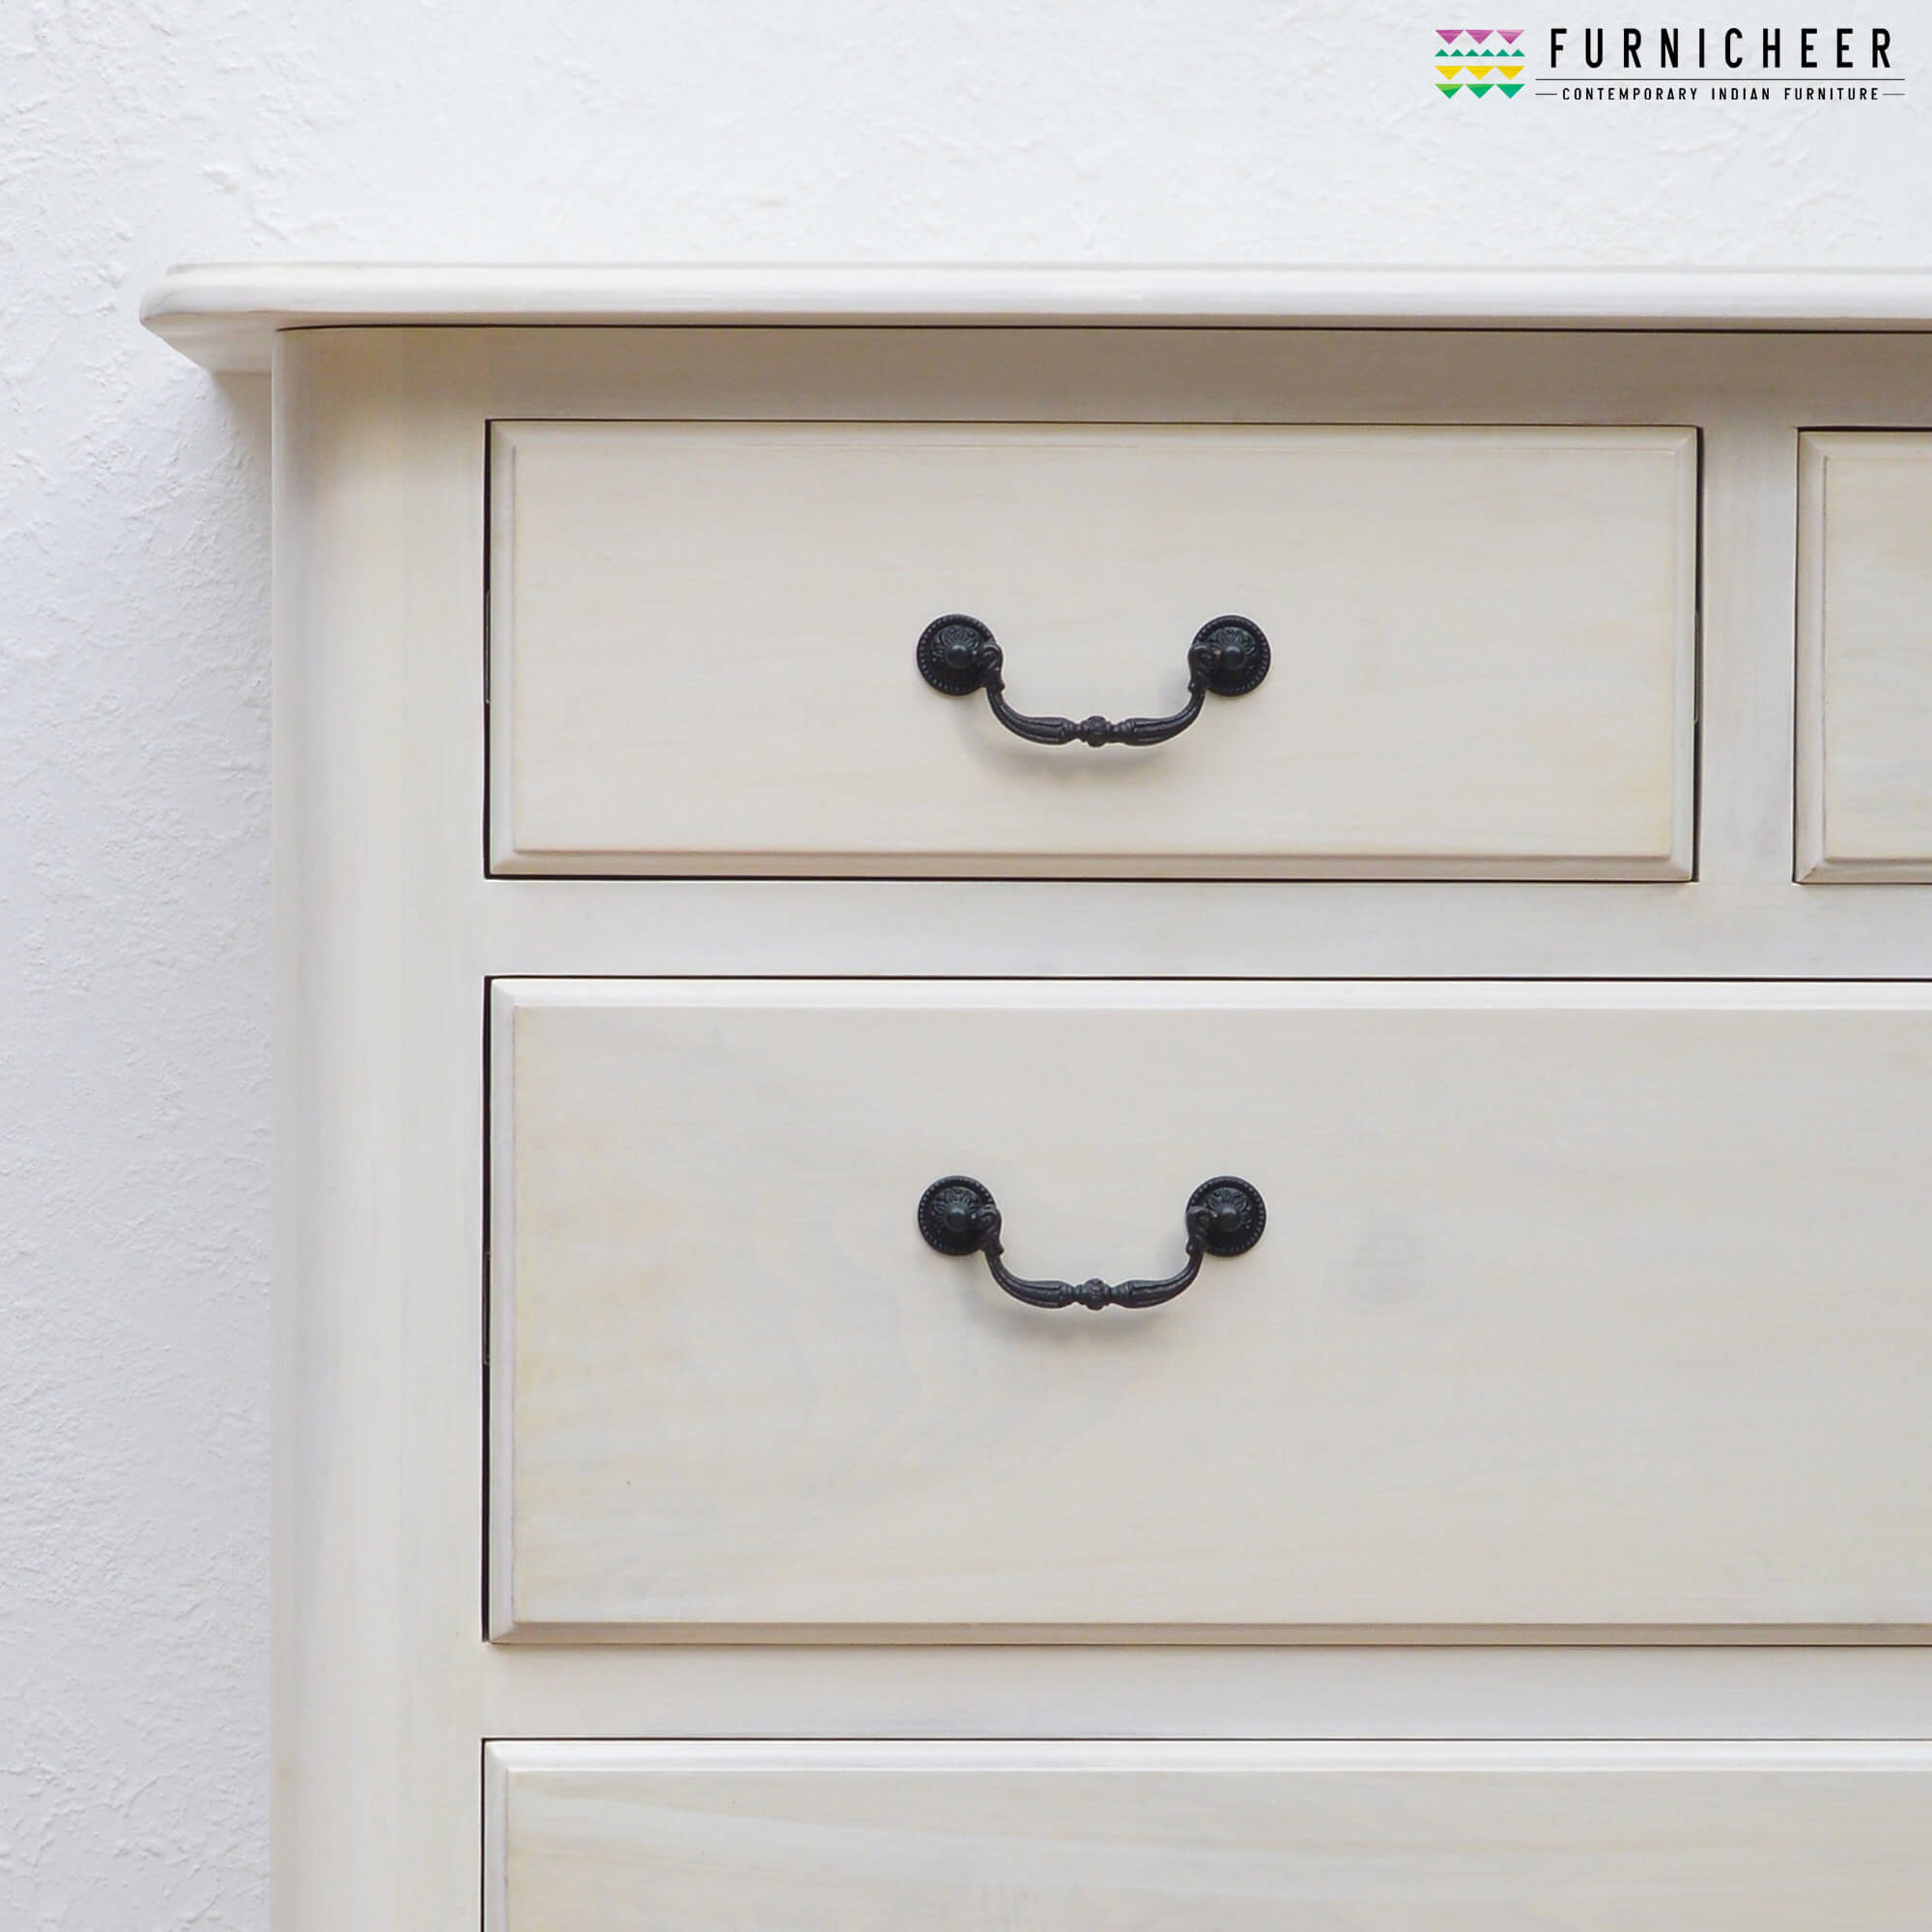 5. CHEST OF DRAWERS CDWT0001